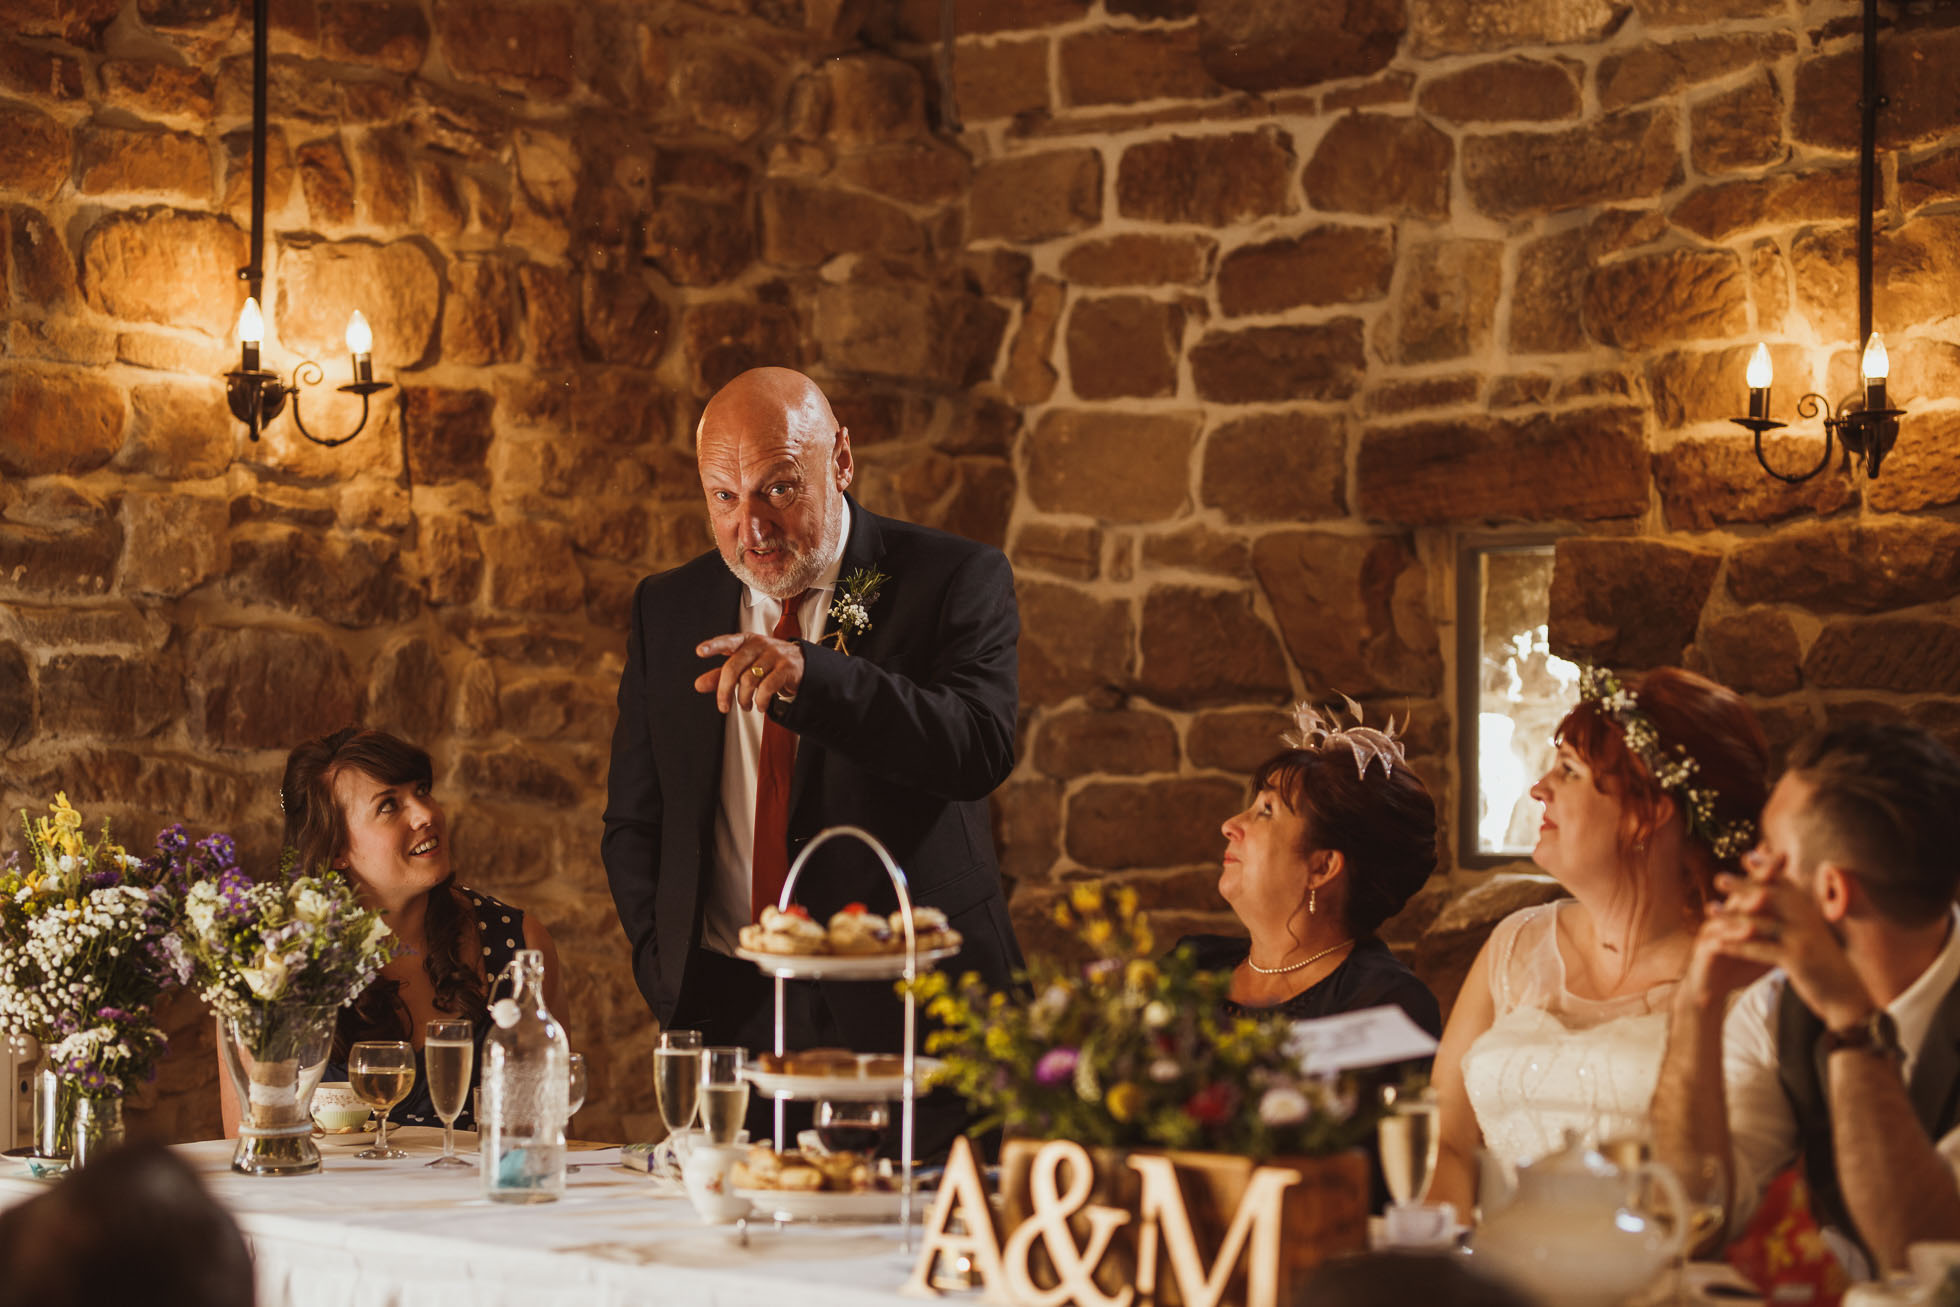 danby_castle_wedding_photographer-92.jpg